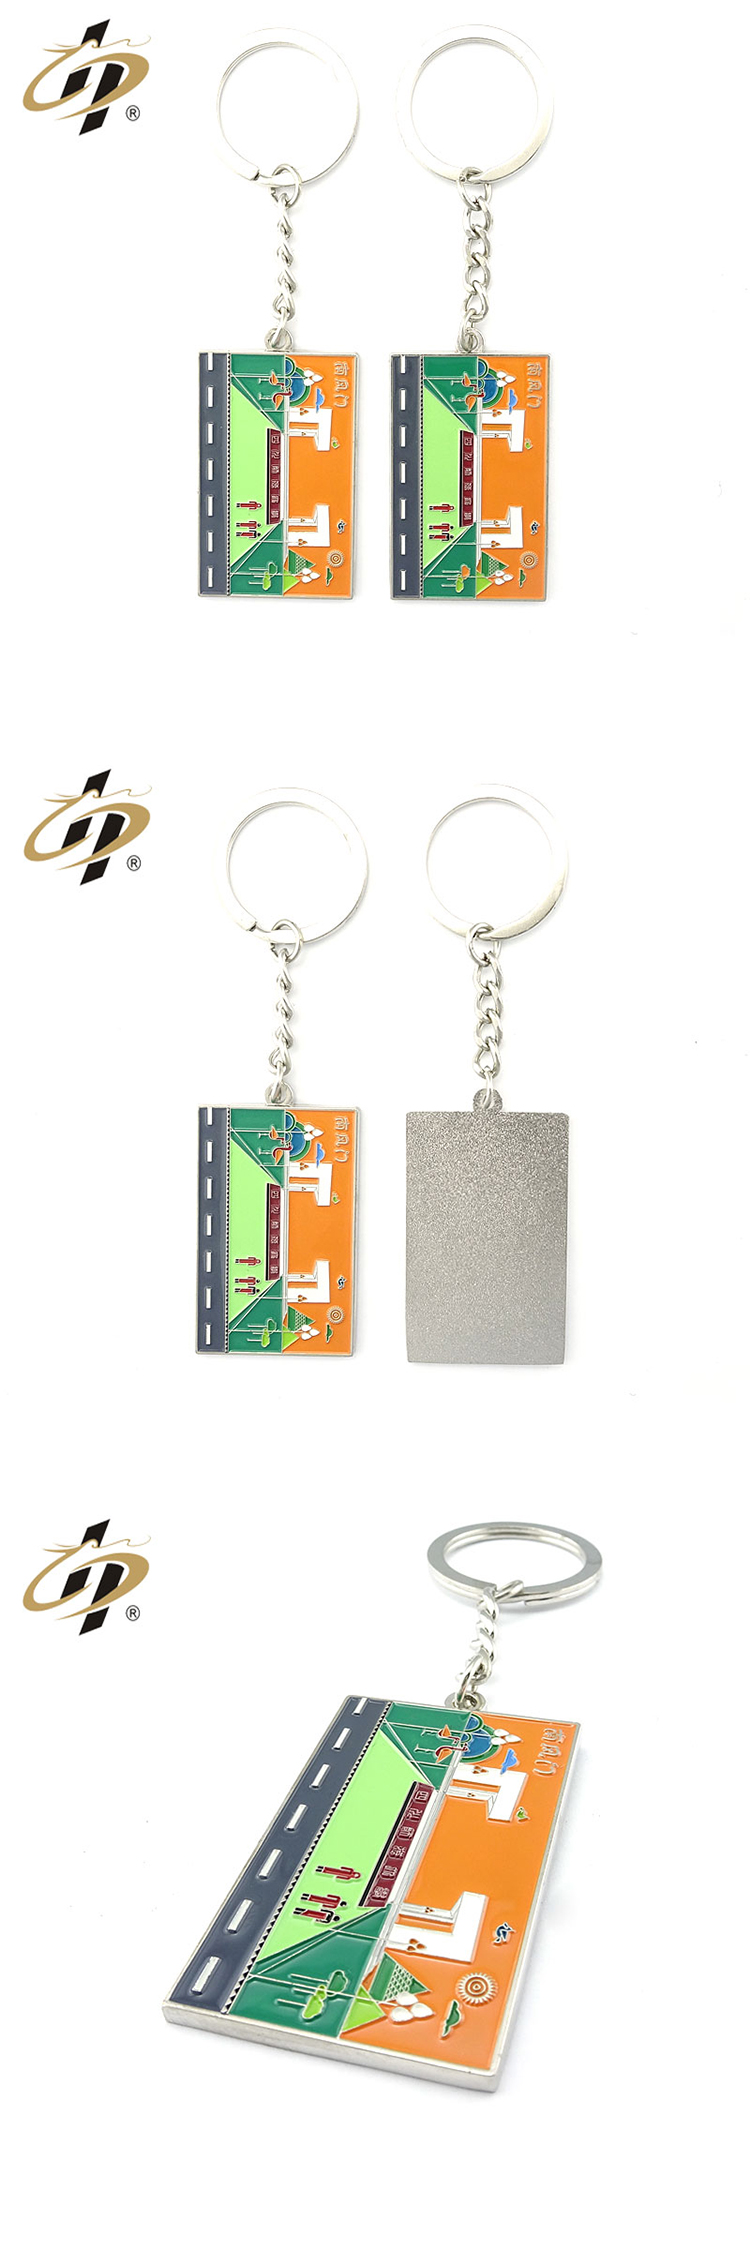 Wholesale custom your own enamel logo souvenir metal keychains